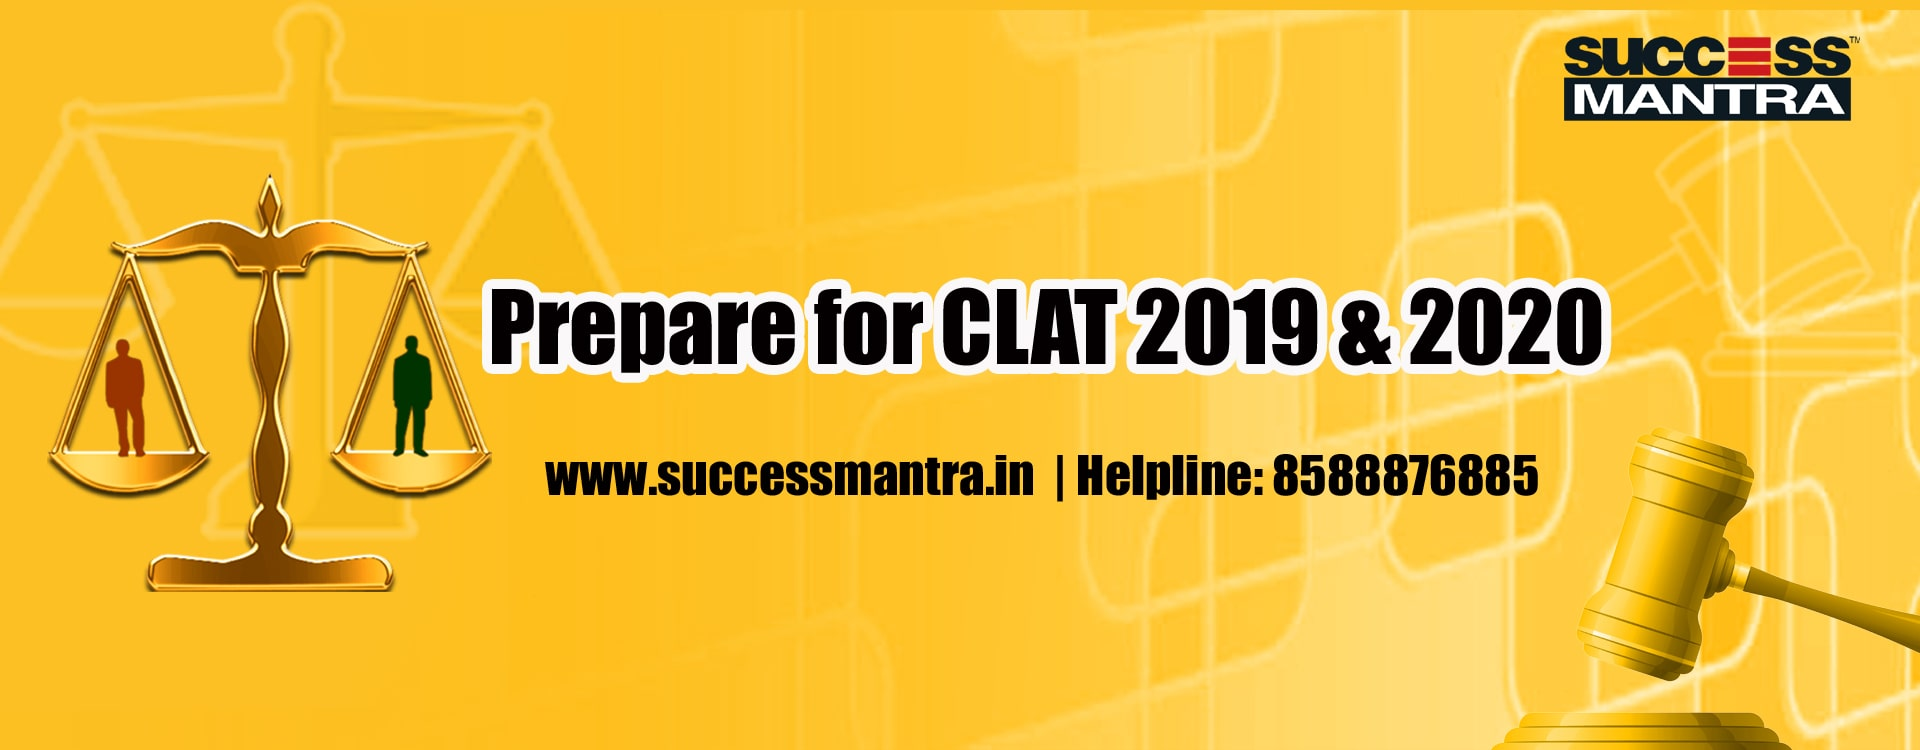 clat 2019, clat 2020, clat, ailet, law entrance 2019, common admission law test, about clat, NLU'S